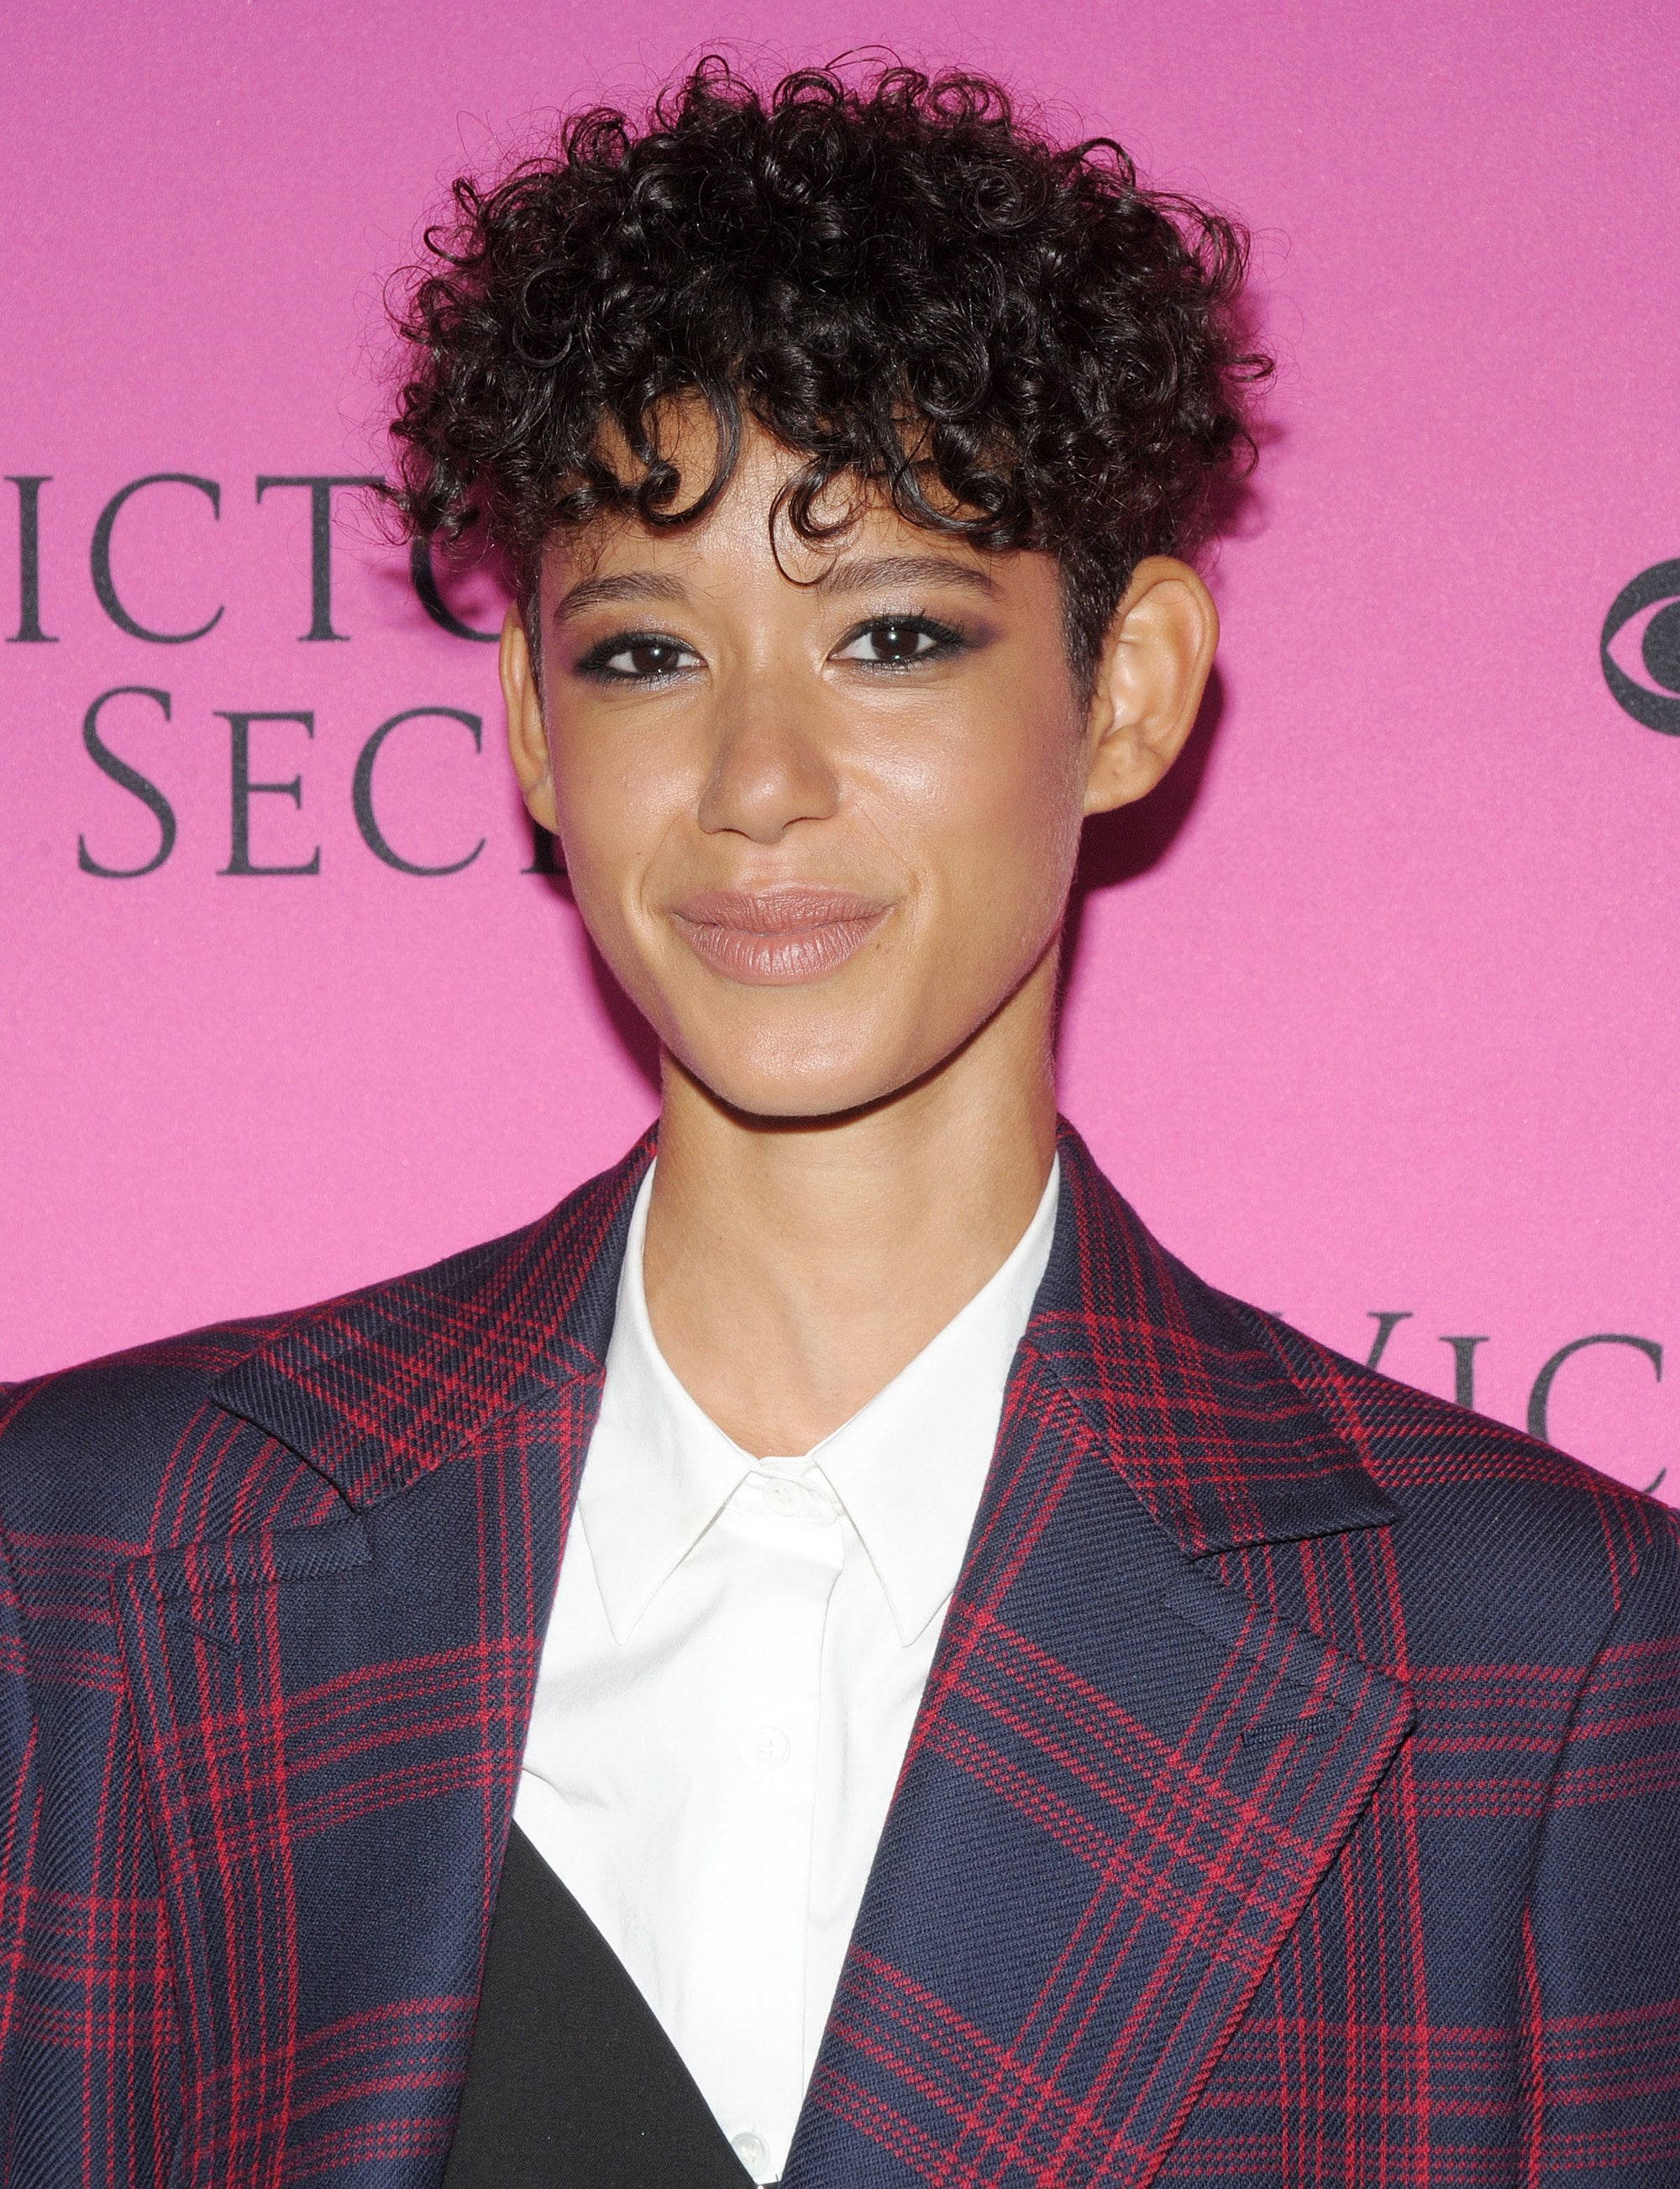 Curly hair hairstyles: Model Dilone with short dark brown curly pixie cut at Victoria's Secret event